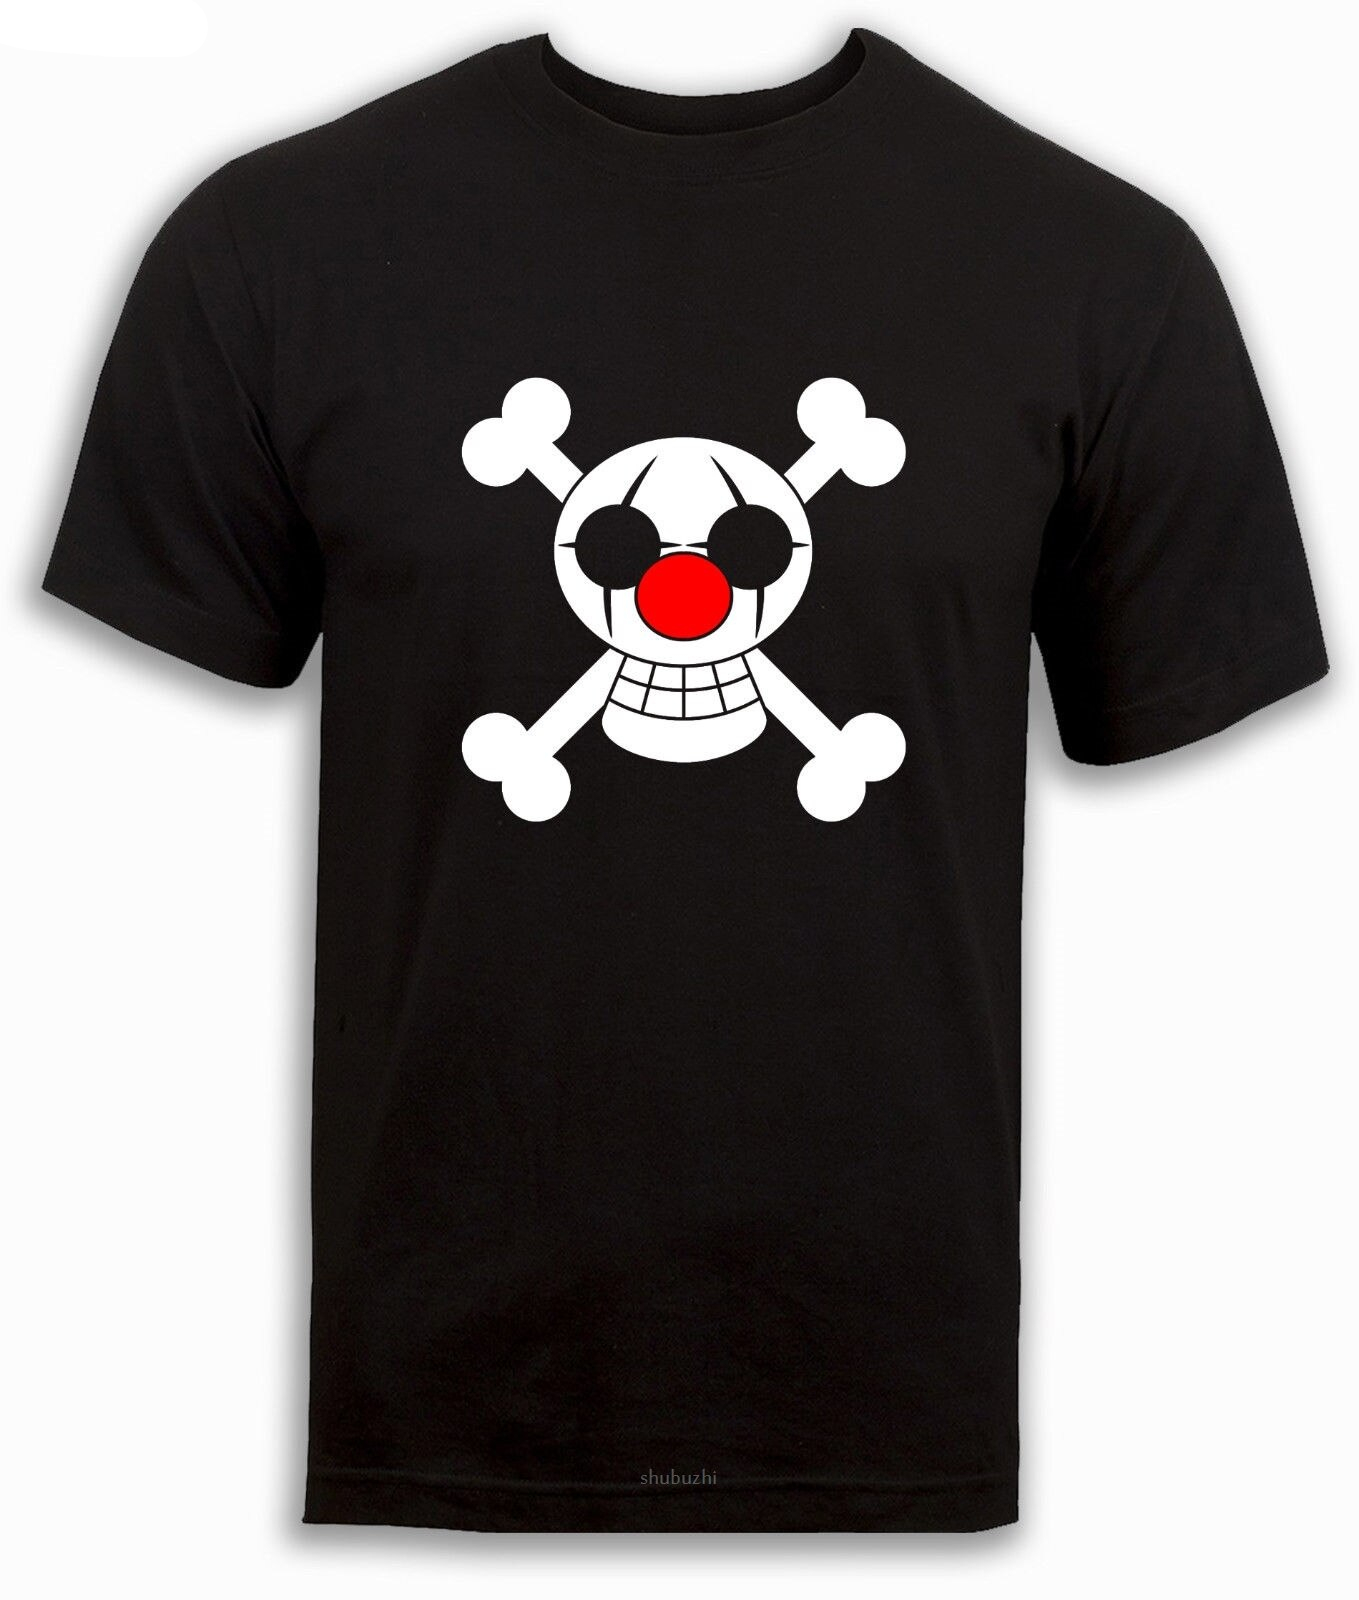 One piece t-shirt, Buggy Pirates,Clown , Pirate flag, anime t shirt Devil Fruit sbz8318